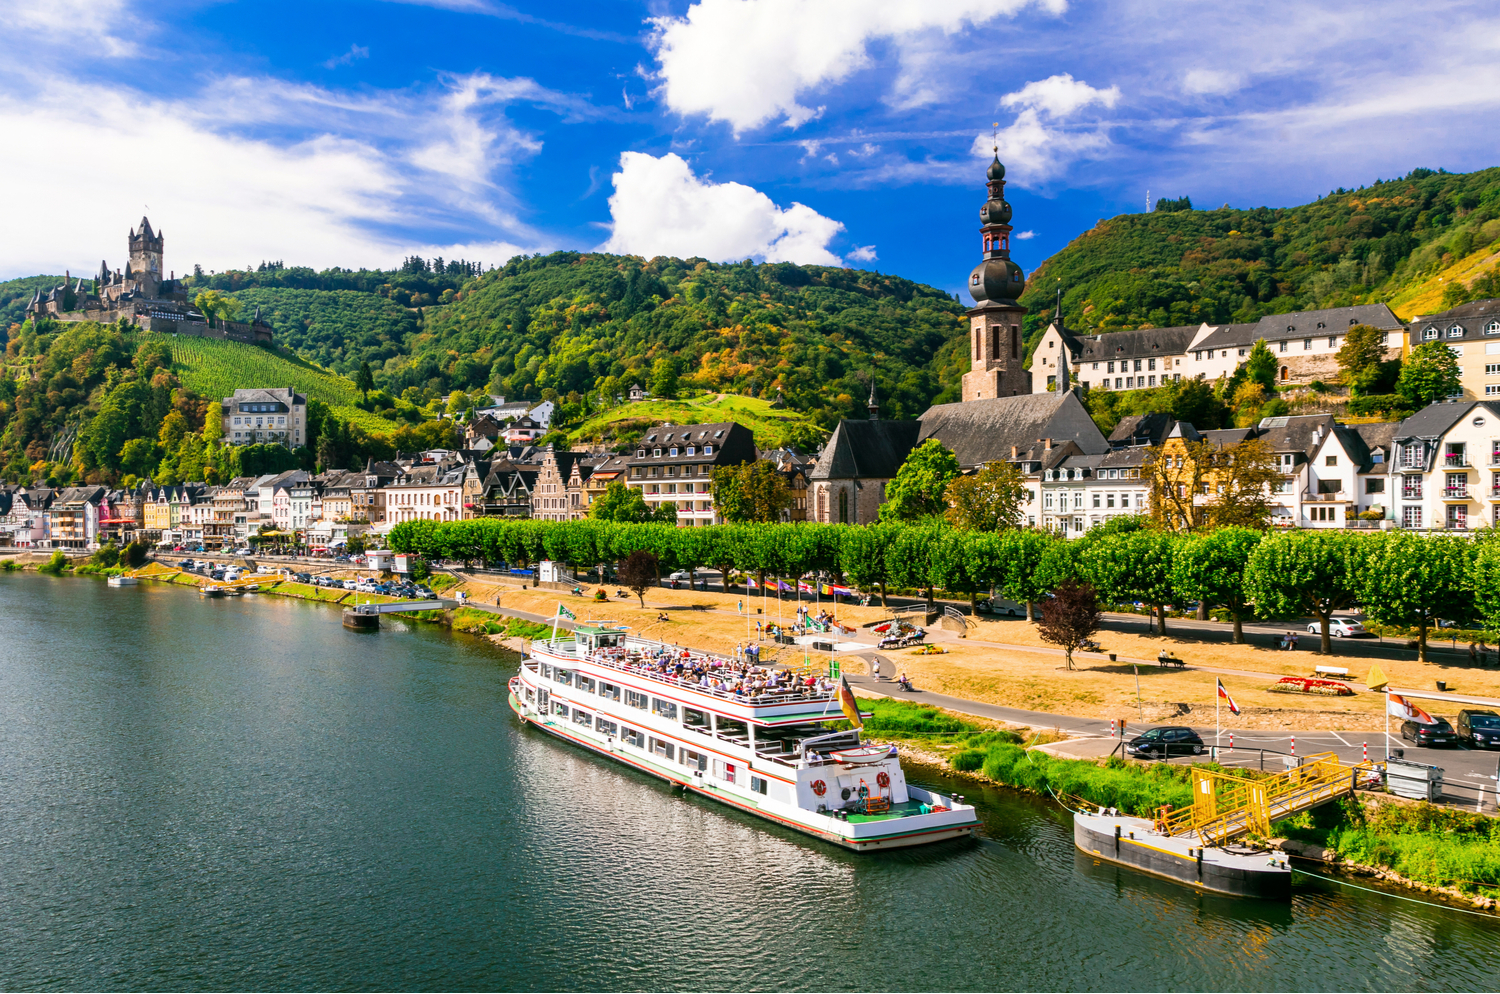 A cruise ship docked at the German town of Cochem on the Rhine